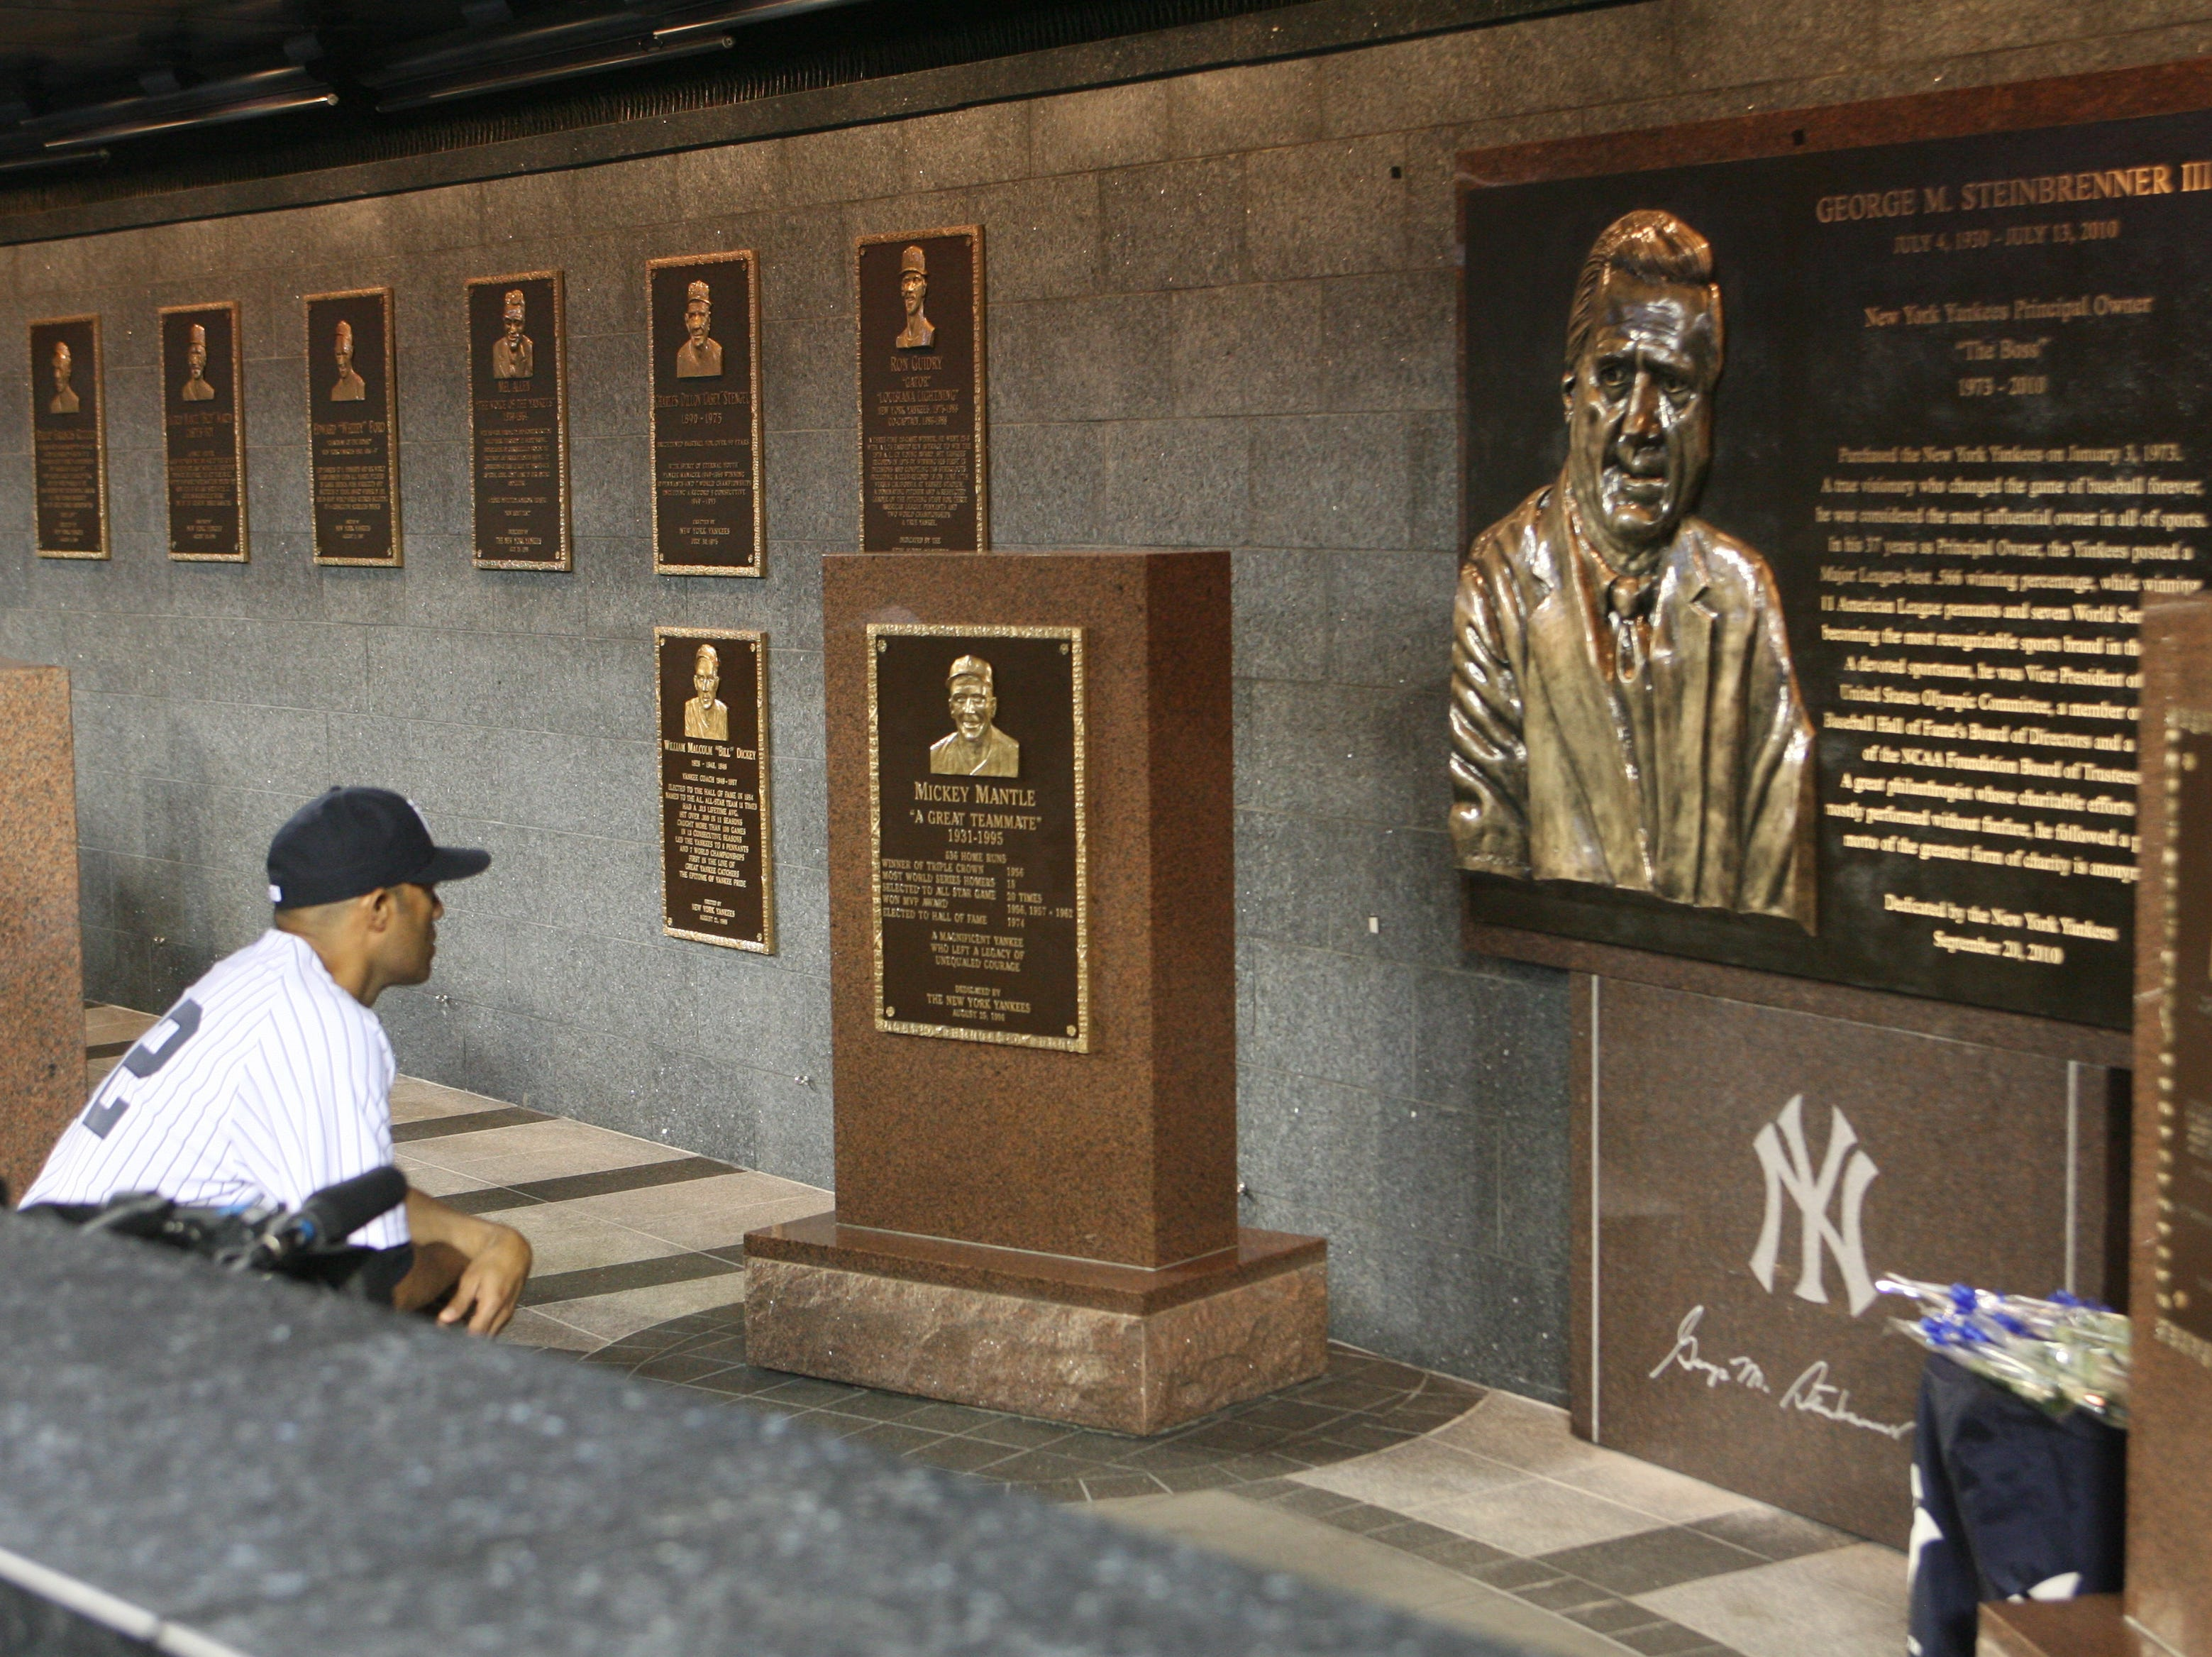 Dedication of the George Steinbrenner Monument in Monument Park at Yankee Stadium.  Mariano Rivera takes a moment to look at the plaque.